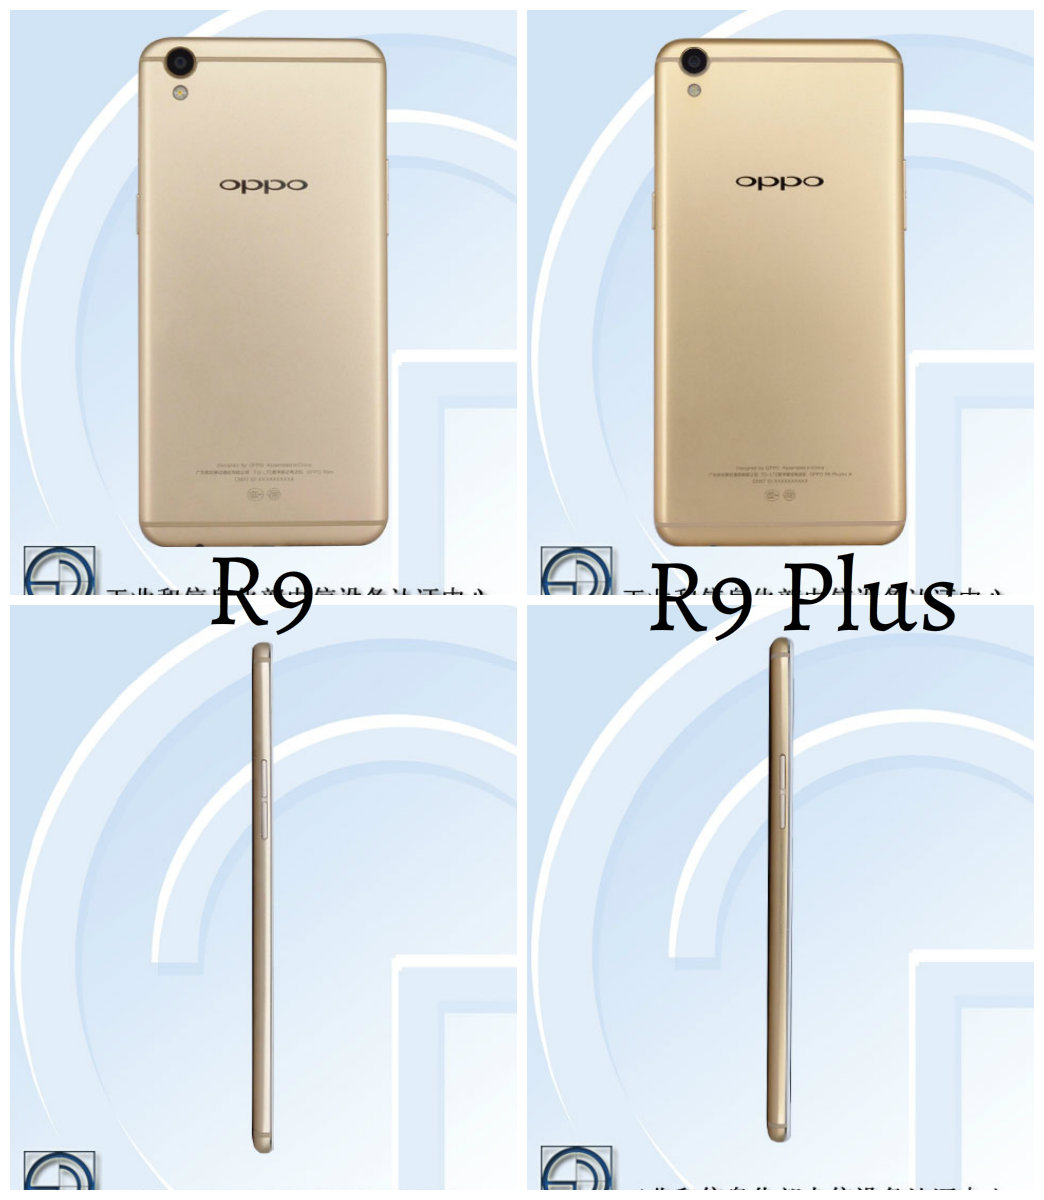 Oppo-R9-and-R9-Plus-certified-by-TENAA (1)